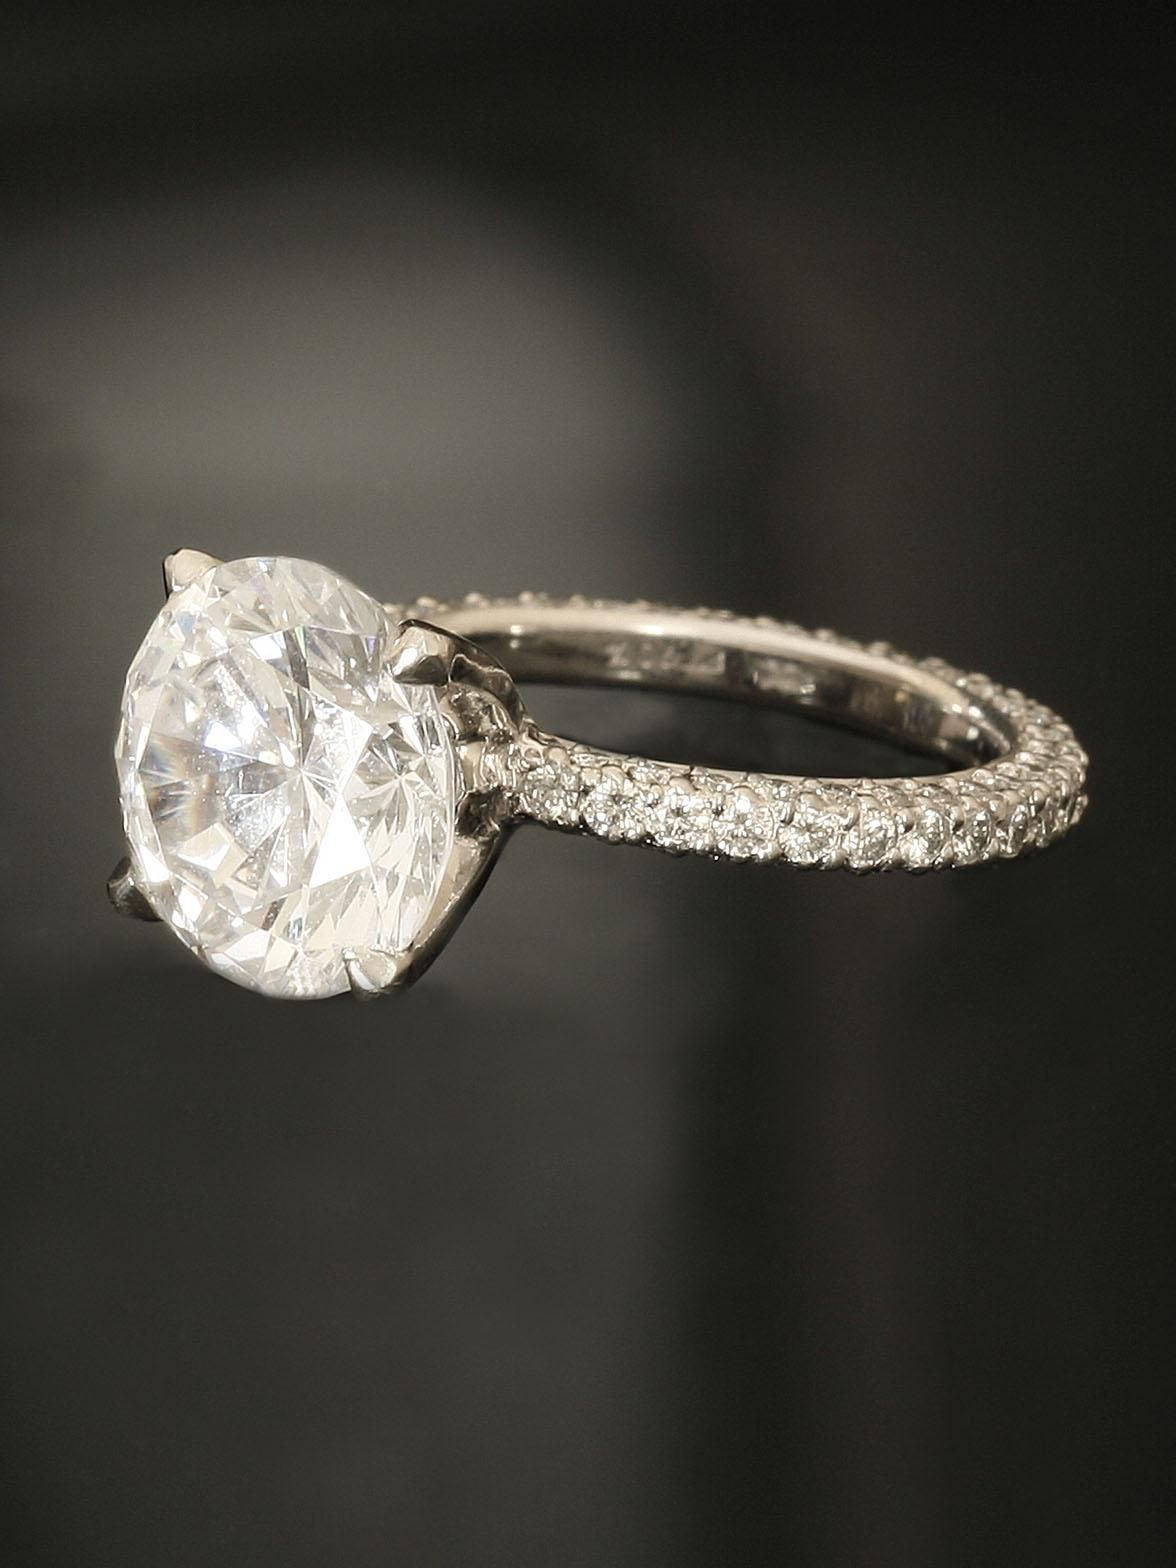 Michael B. Platinum Princess Collection Engagement Ring at London Jewelers!    I found ur ring heidi!!